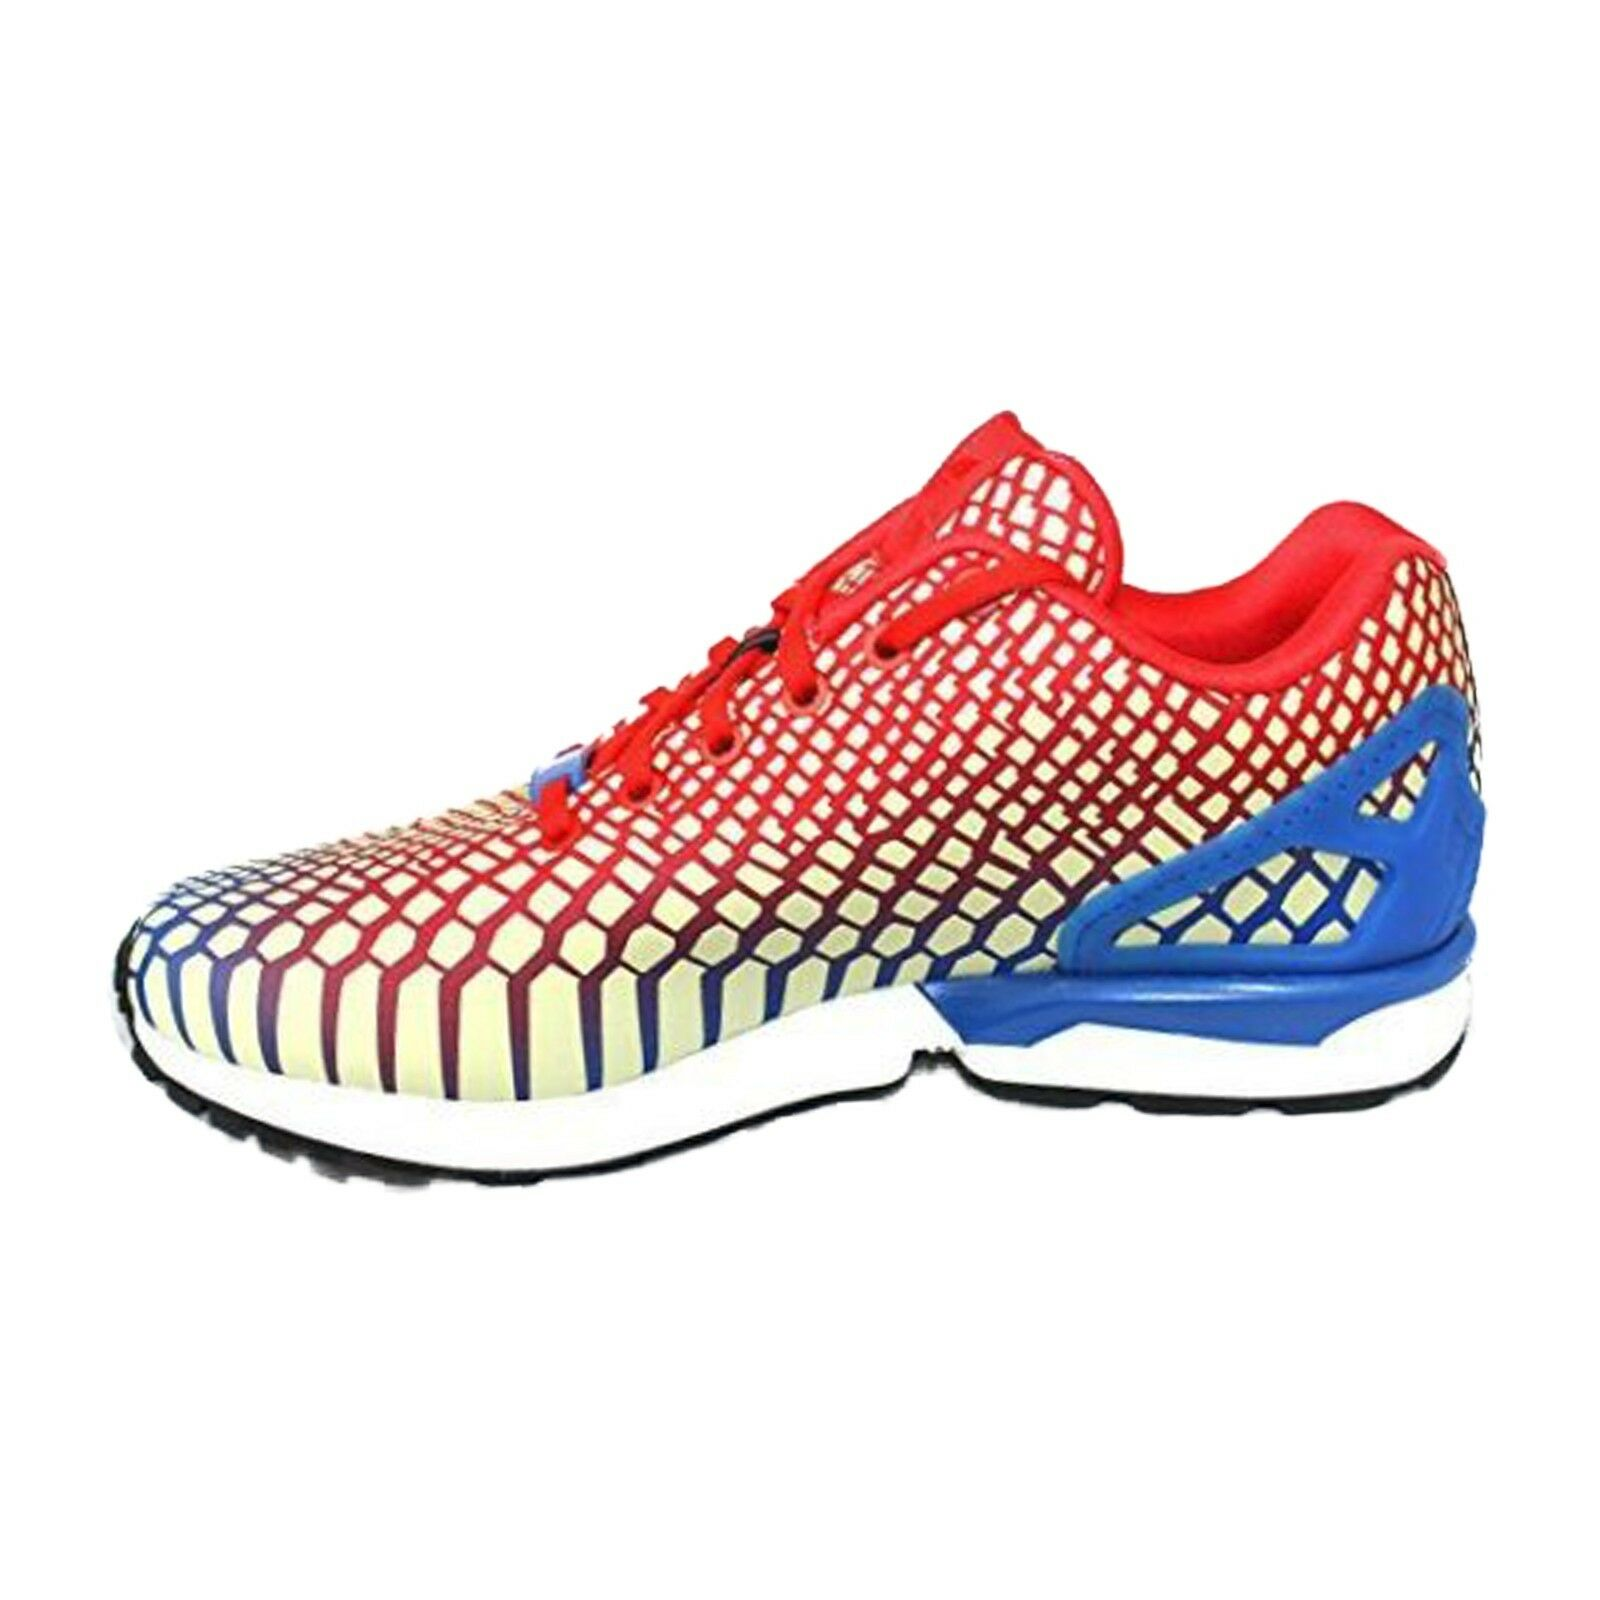 adidas Originals ZX Flux Xeno Men's Running Shoes Red Blue White size 10 NIB